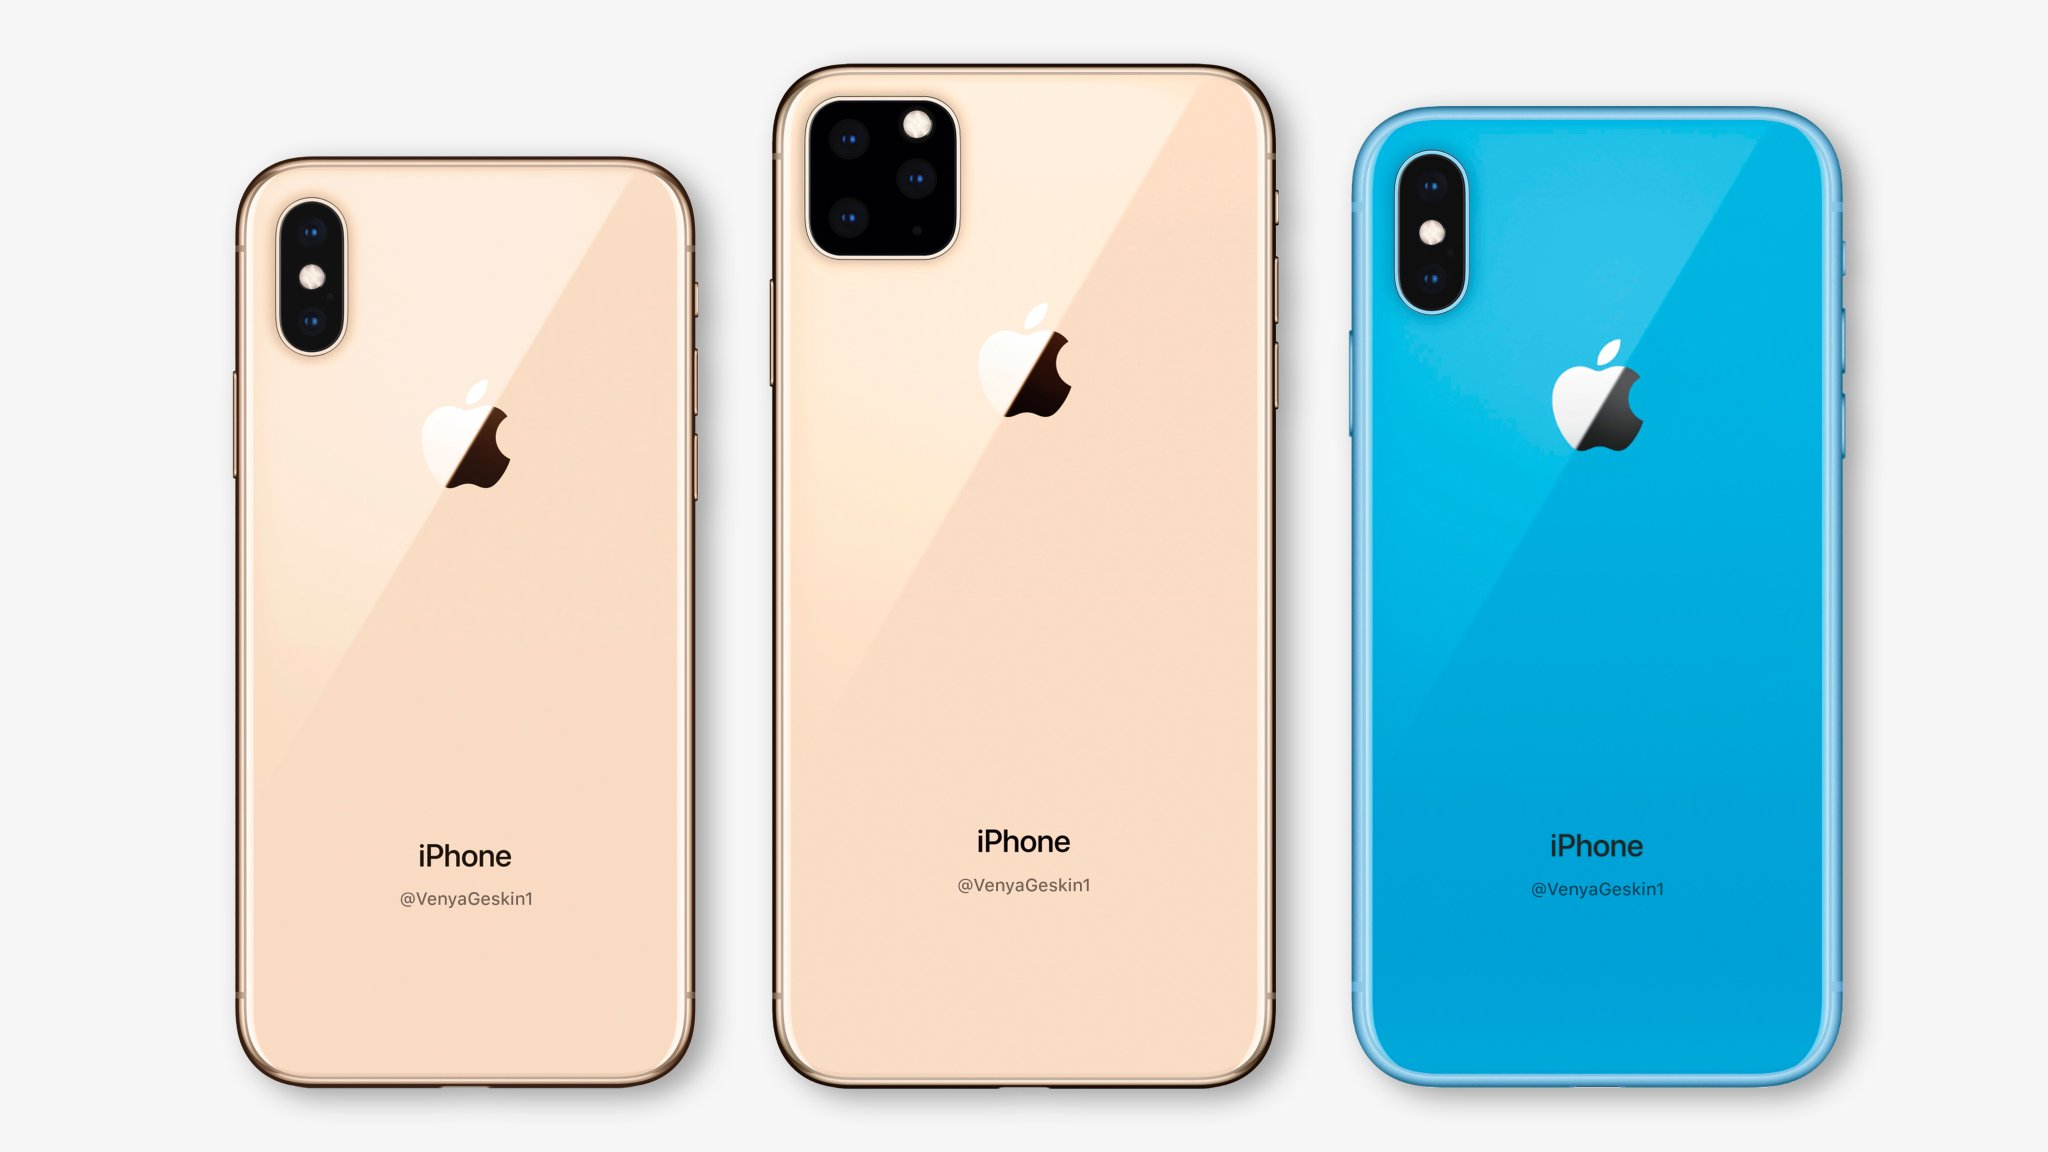 When does the iPhone 11, iPhone 11 Max, and iPhone 11R come out?